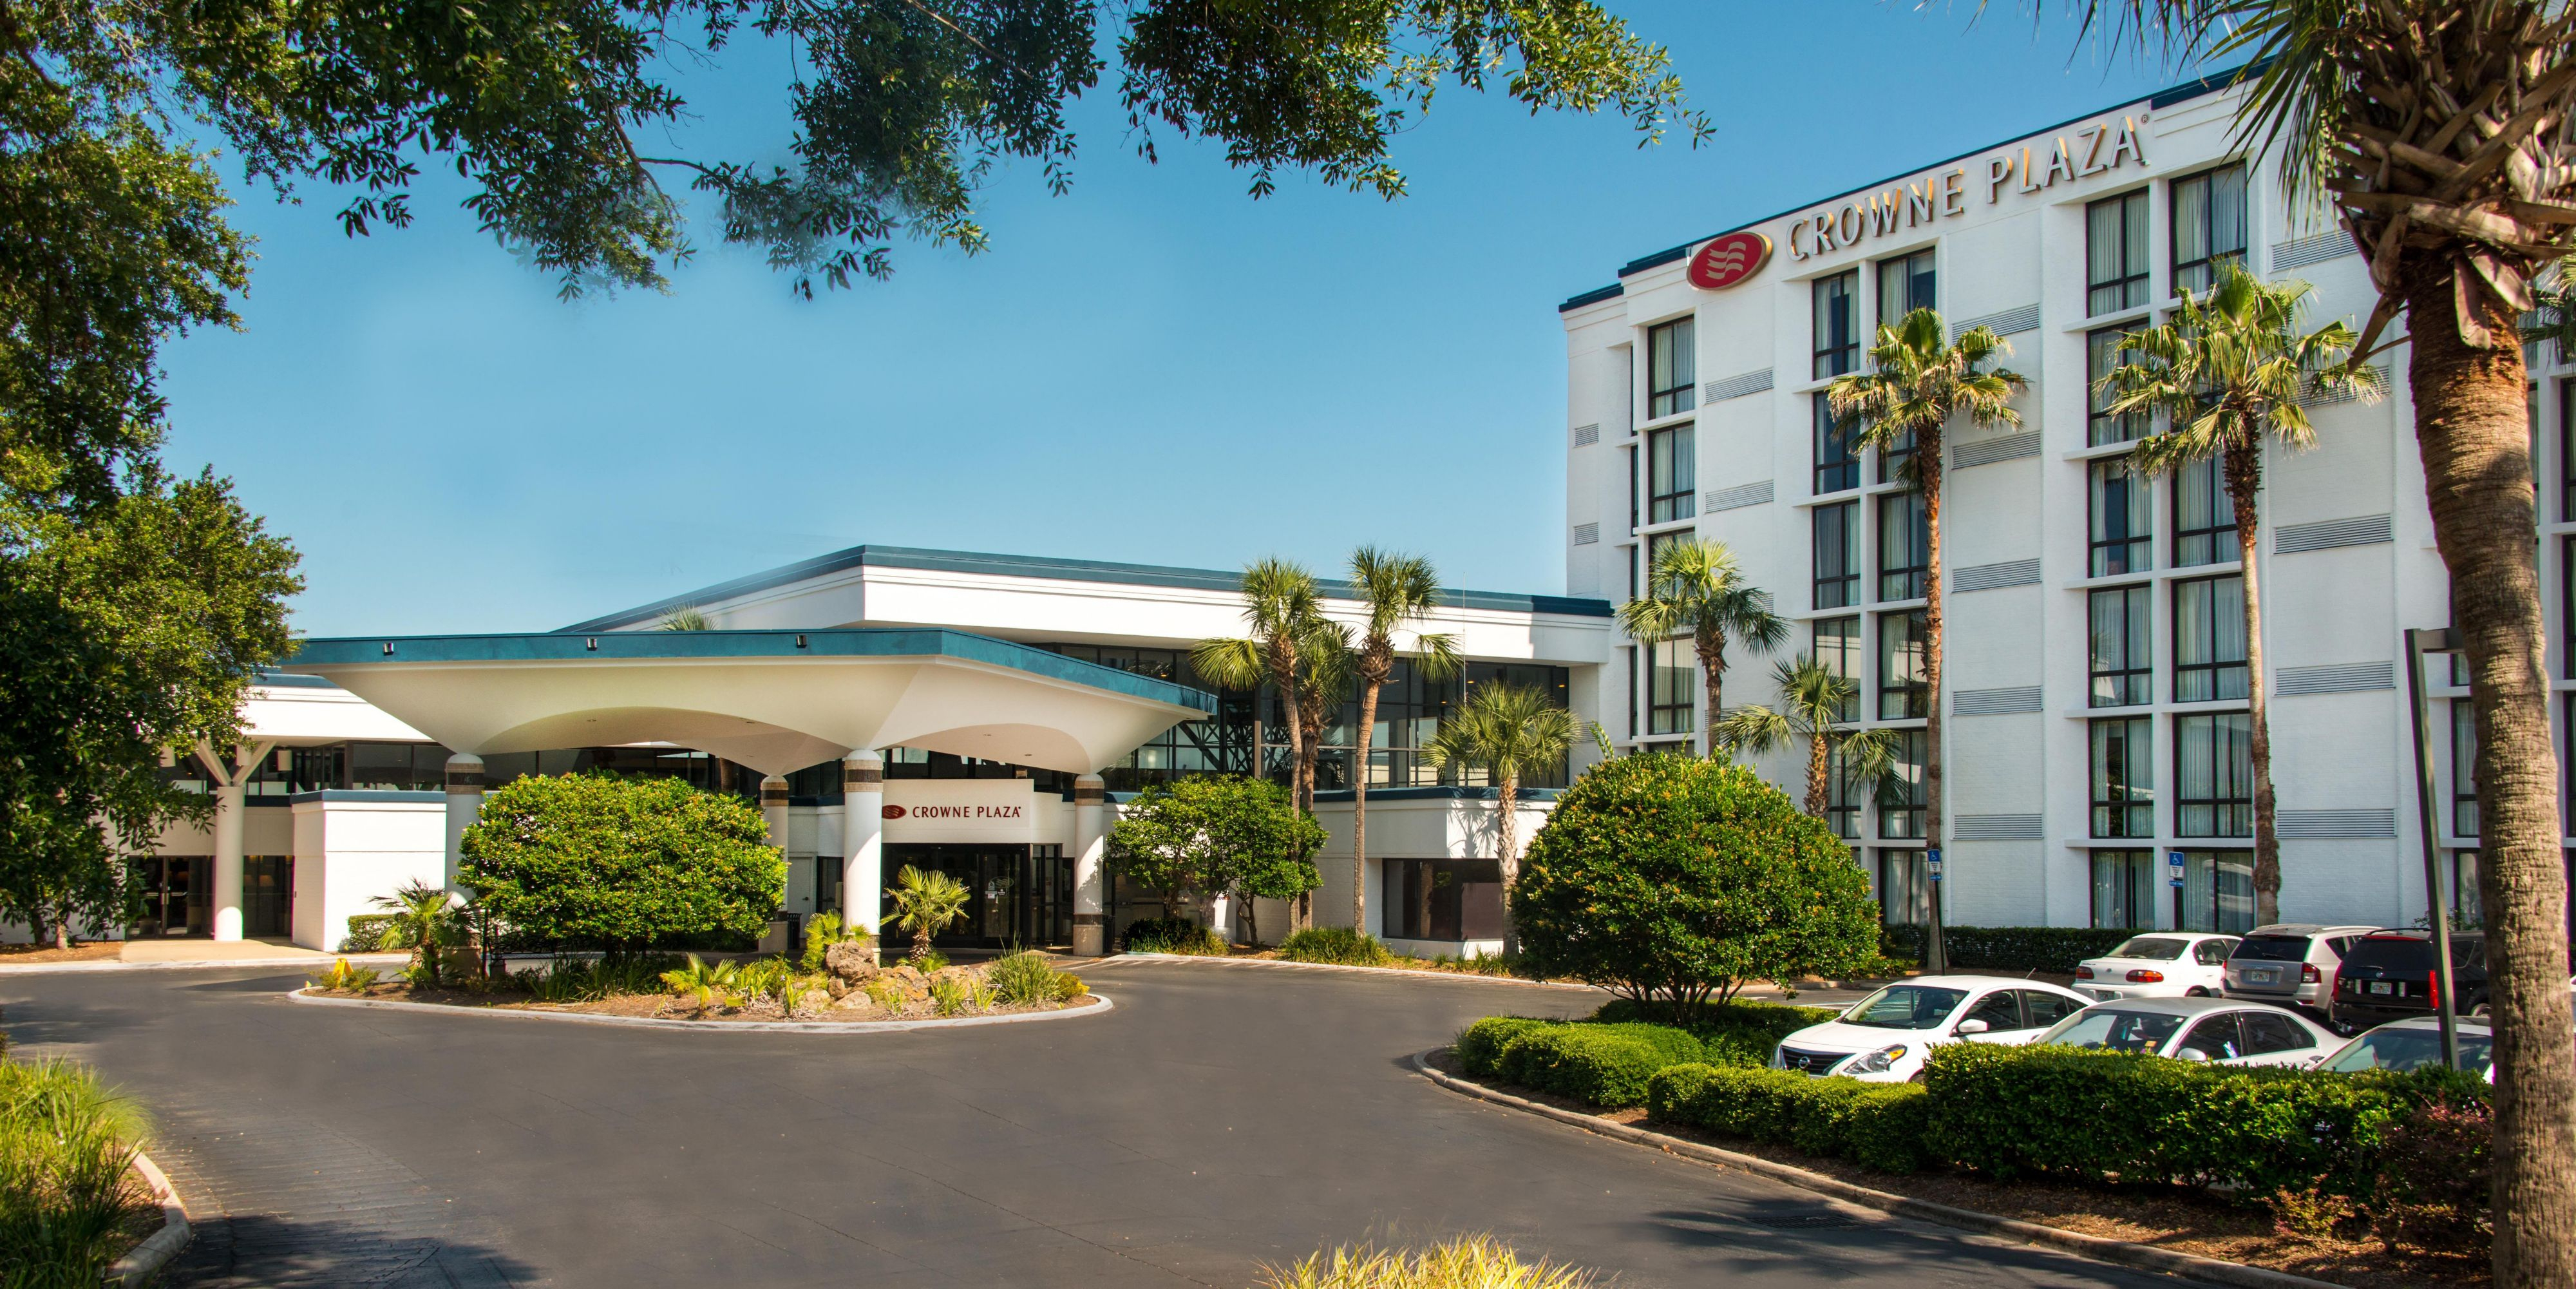 Airport Hotels In Jacksonville Fl Crowne Plaza